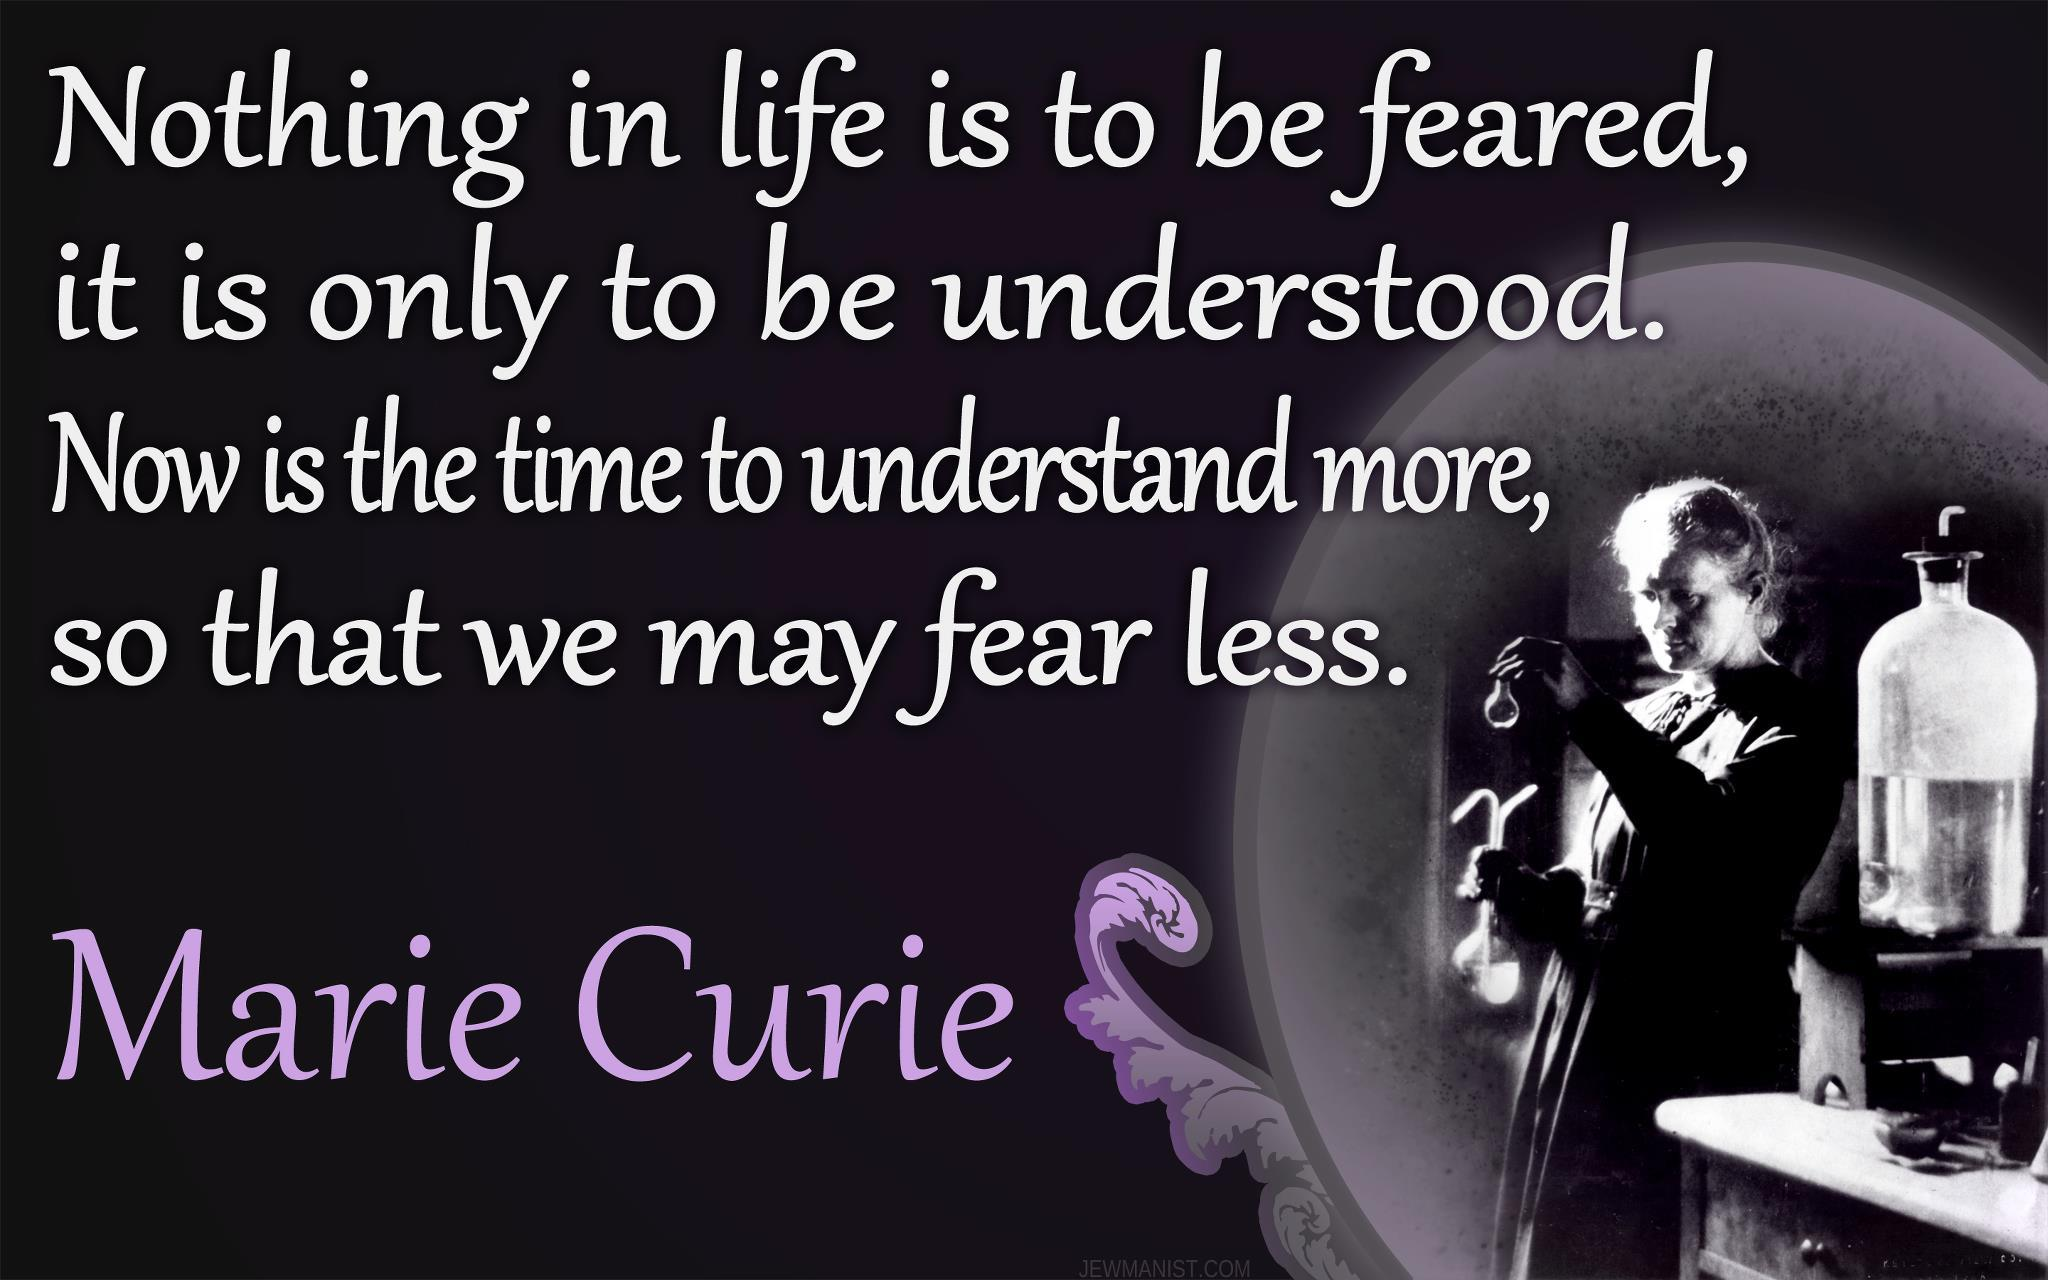 Understand More so that you Fear Less